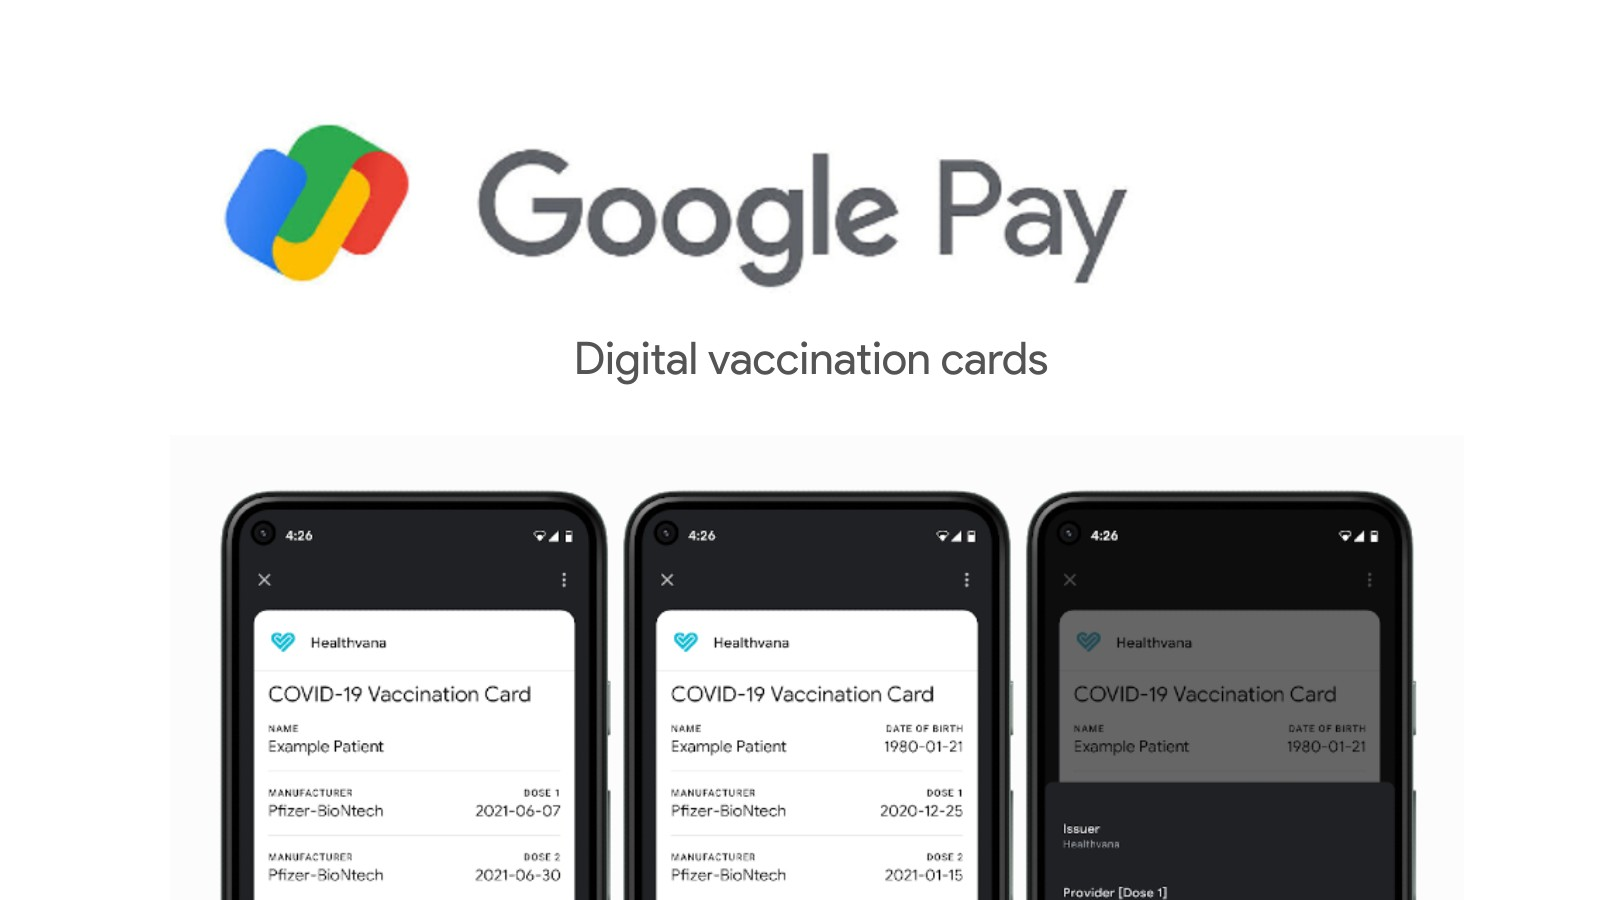 Android devices now have the ability to store digital COVID vaccination cards when they arrive